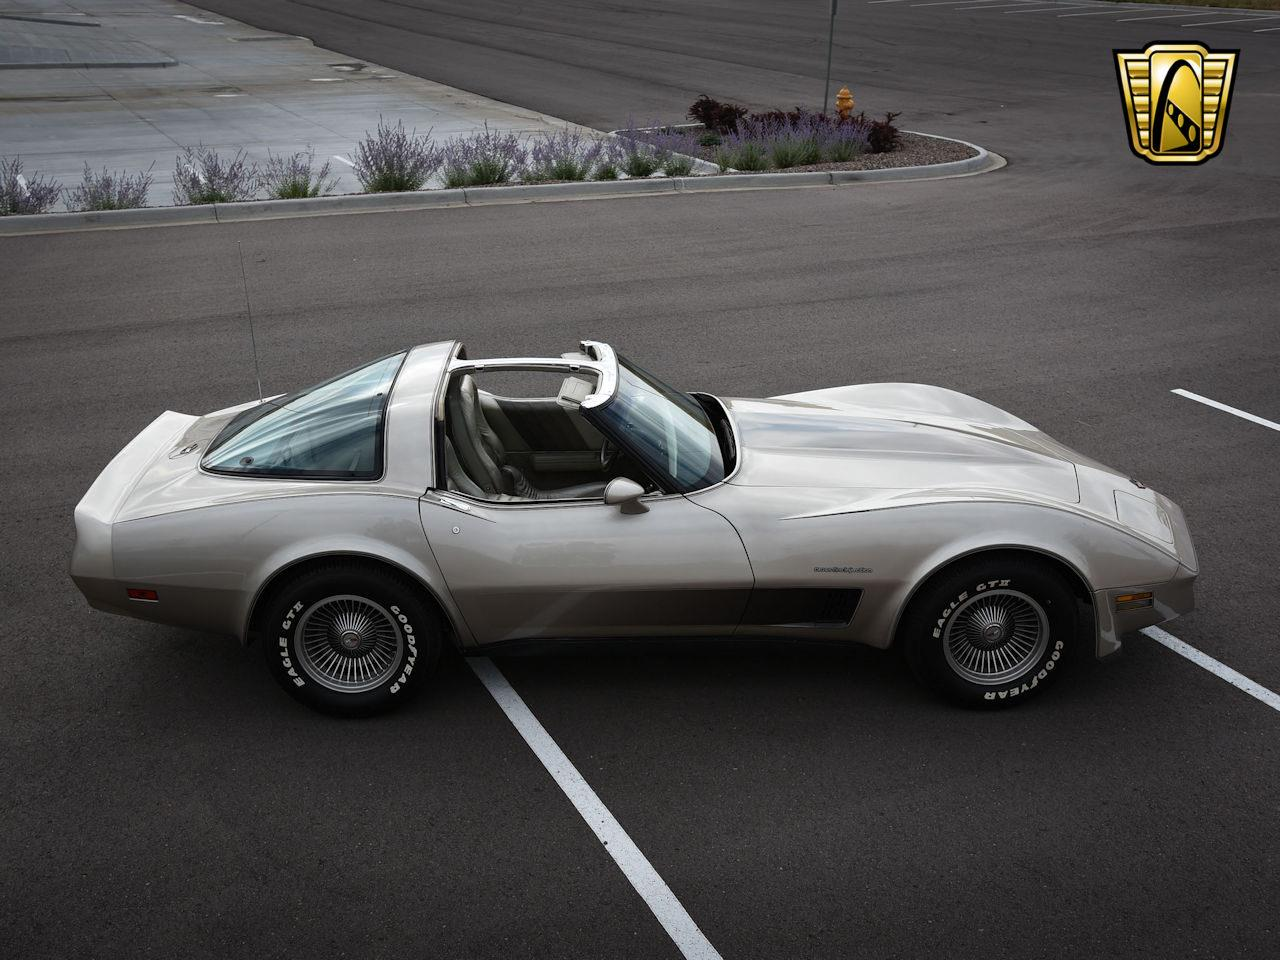 Large Picture of '82 Corvette - $18,995.00 Offered by Gateway Classic Cars - Denver - LNRR